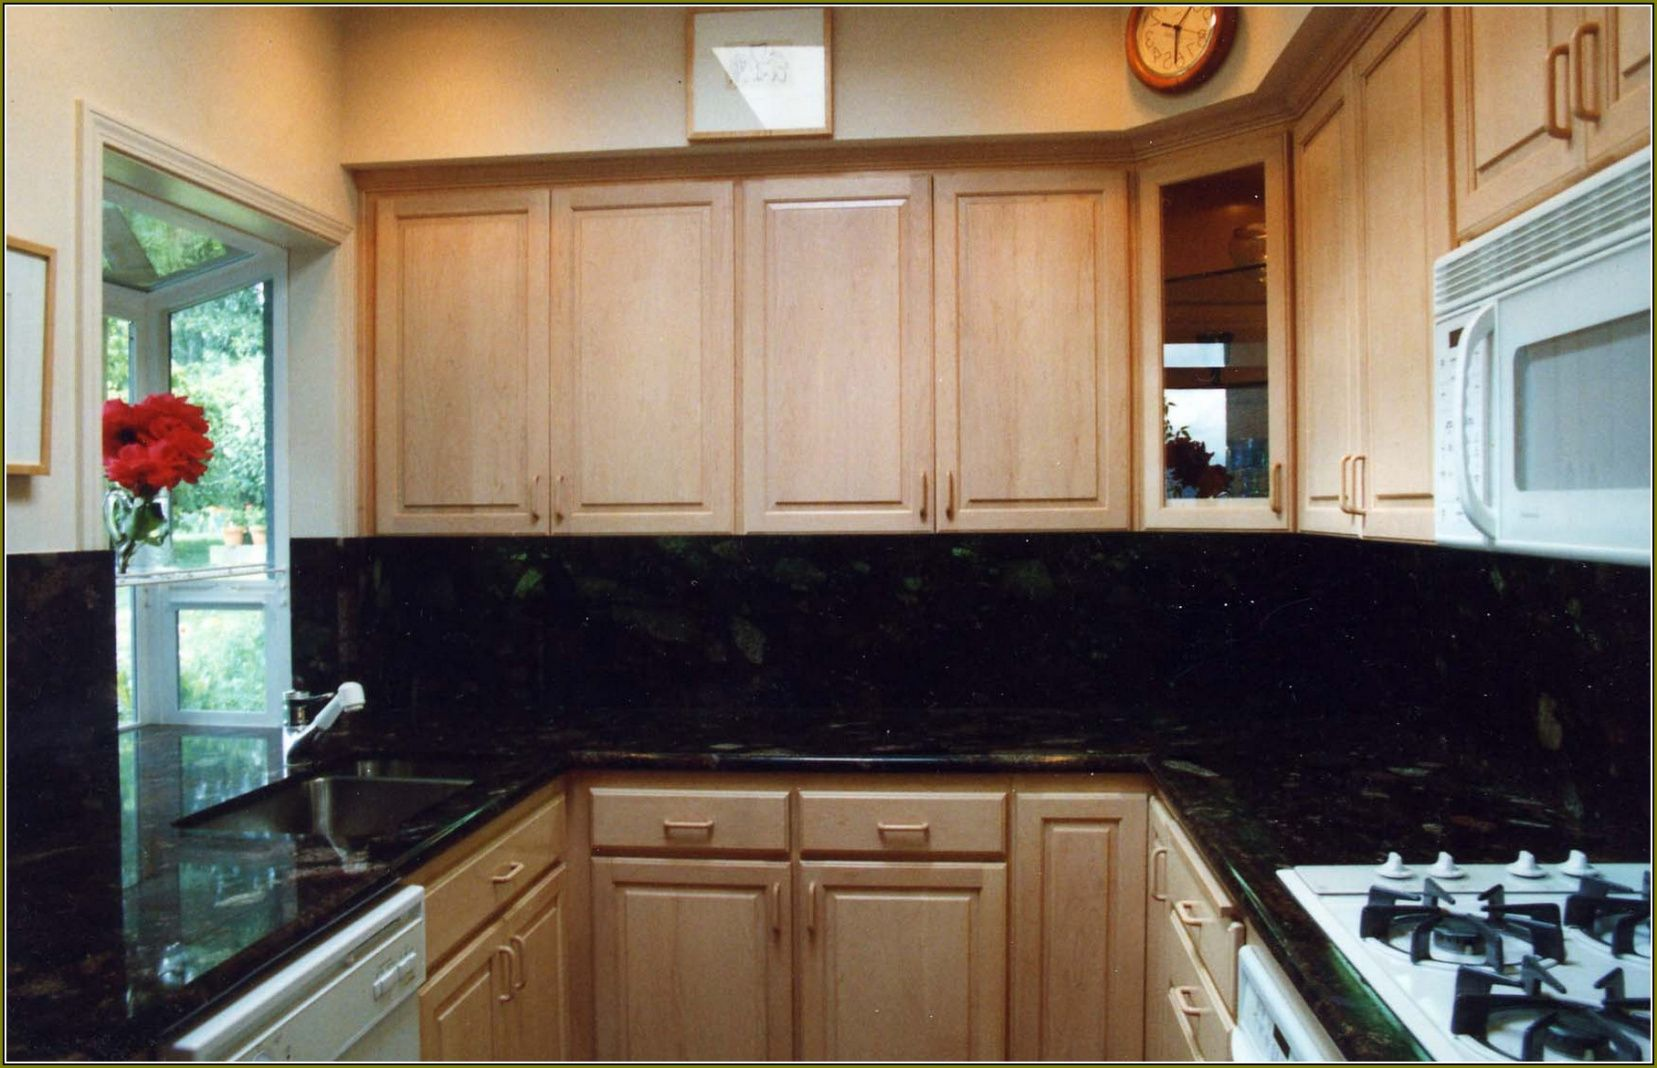 77+ Natural Maple Cabinets with Granite Countertops ... on Natural Maple Cabinets With Black Granite Countertops  id=36735